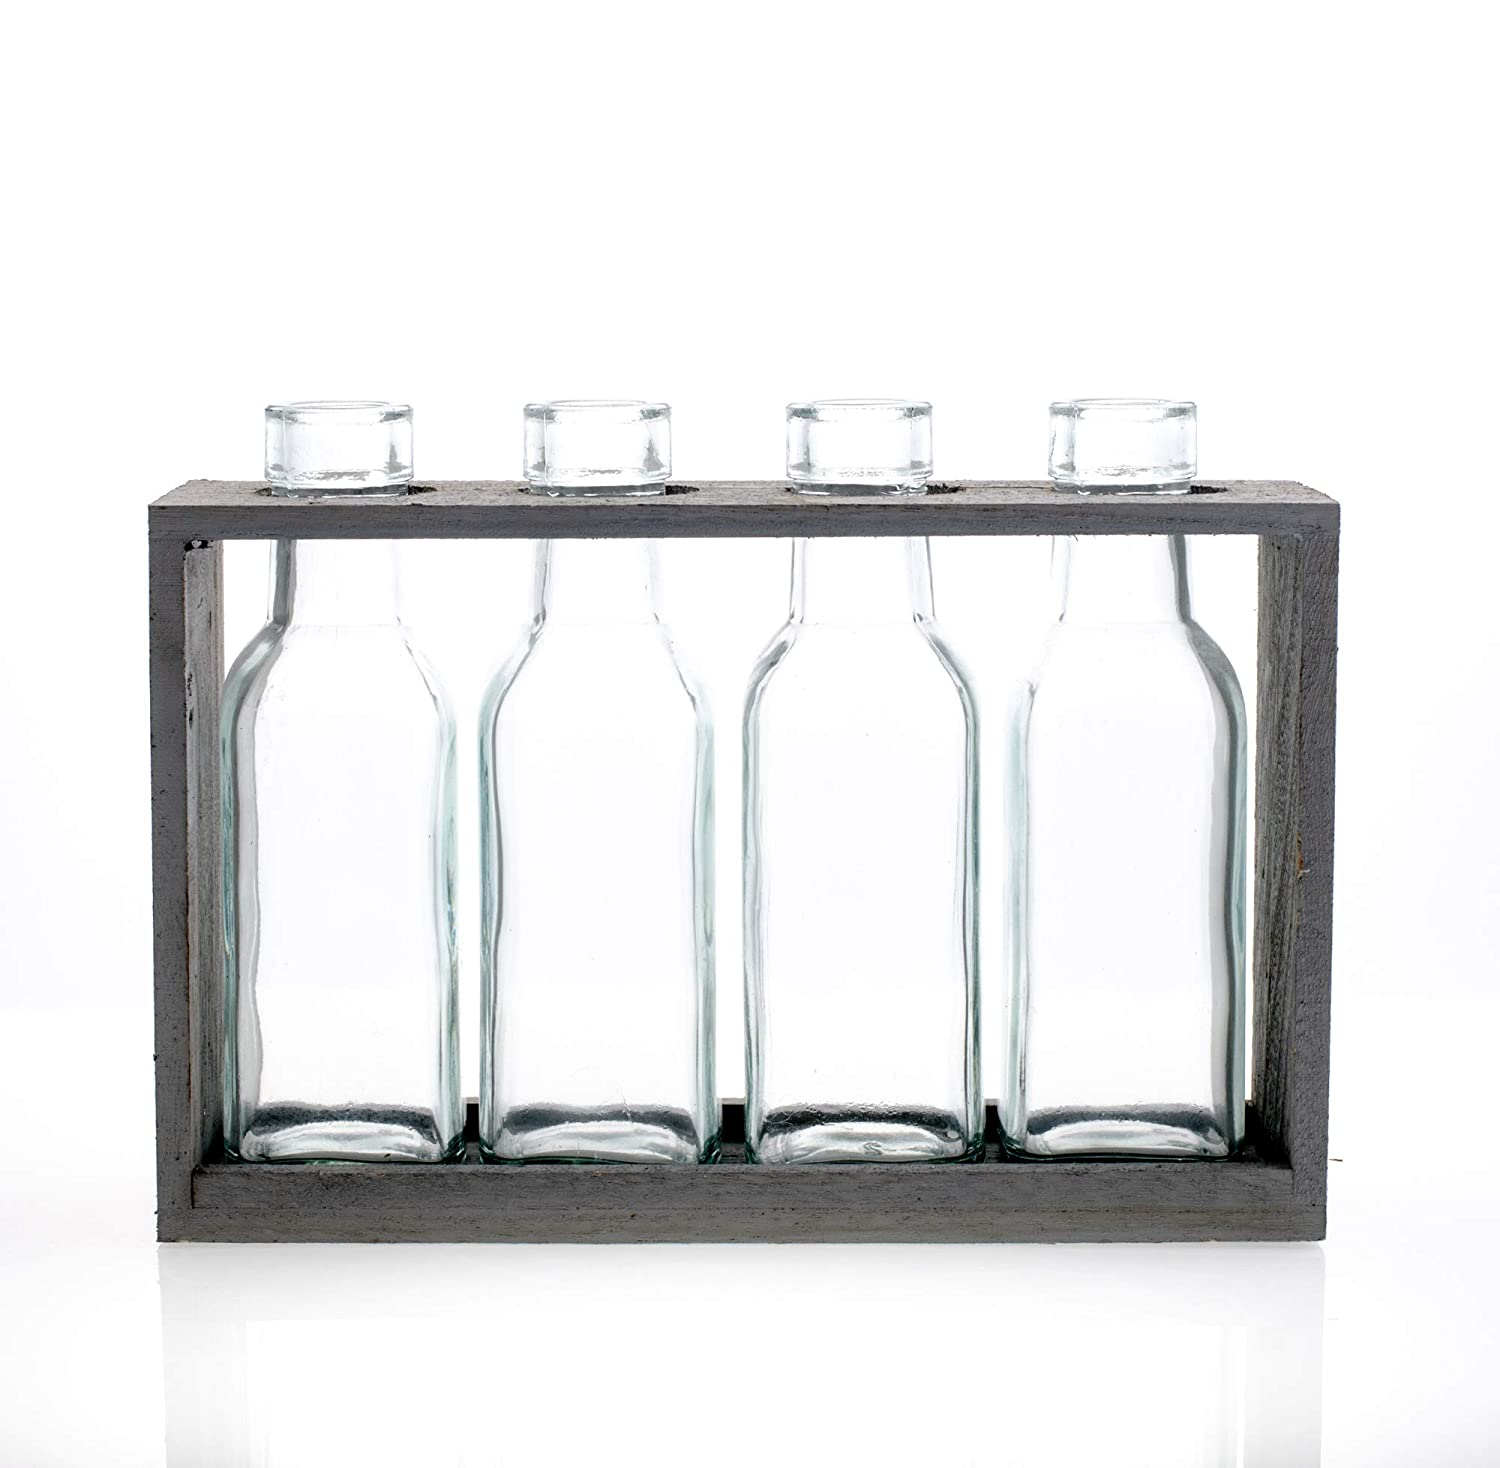 Sullivans 4 Glass Bottles in Wood Crate Display Grey Clear 9 x 2 x 7 Clear 9 x 2 x 7 G6584